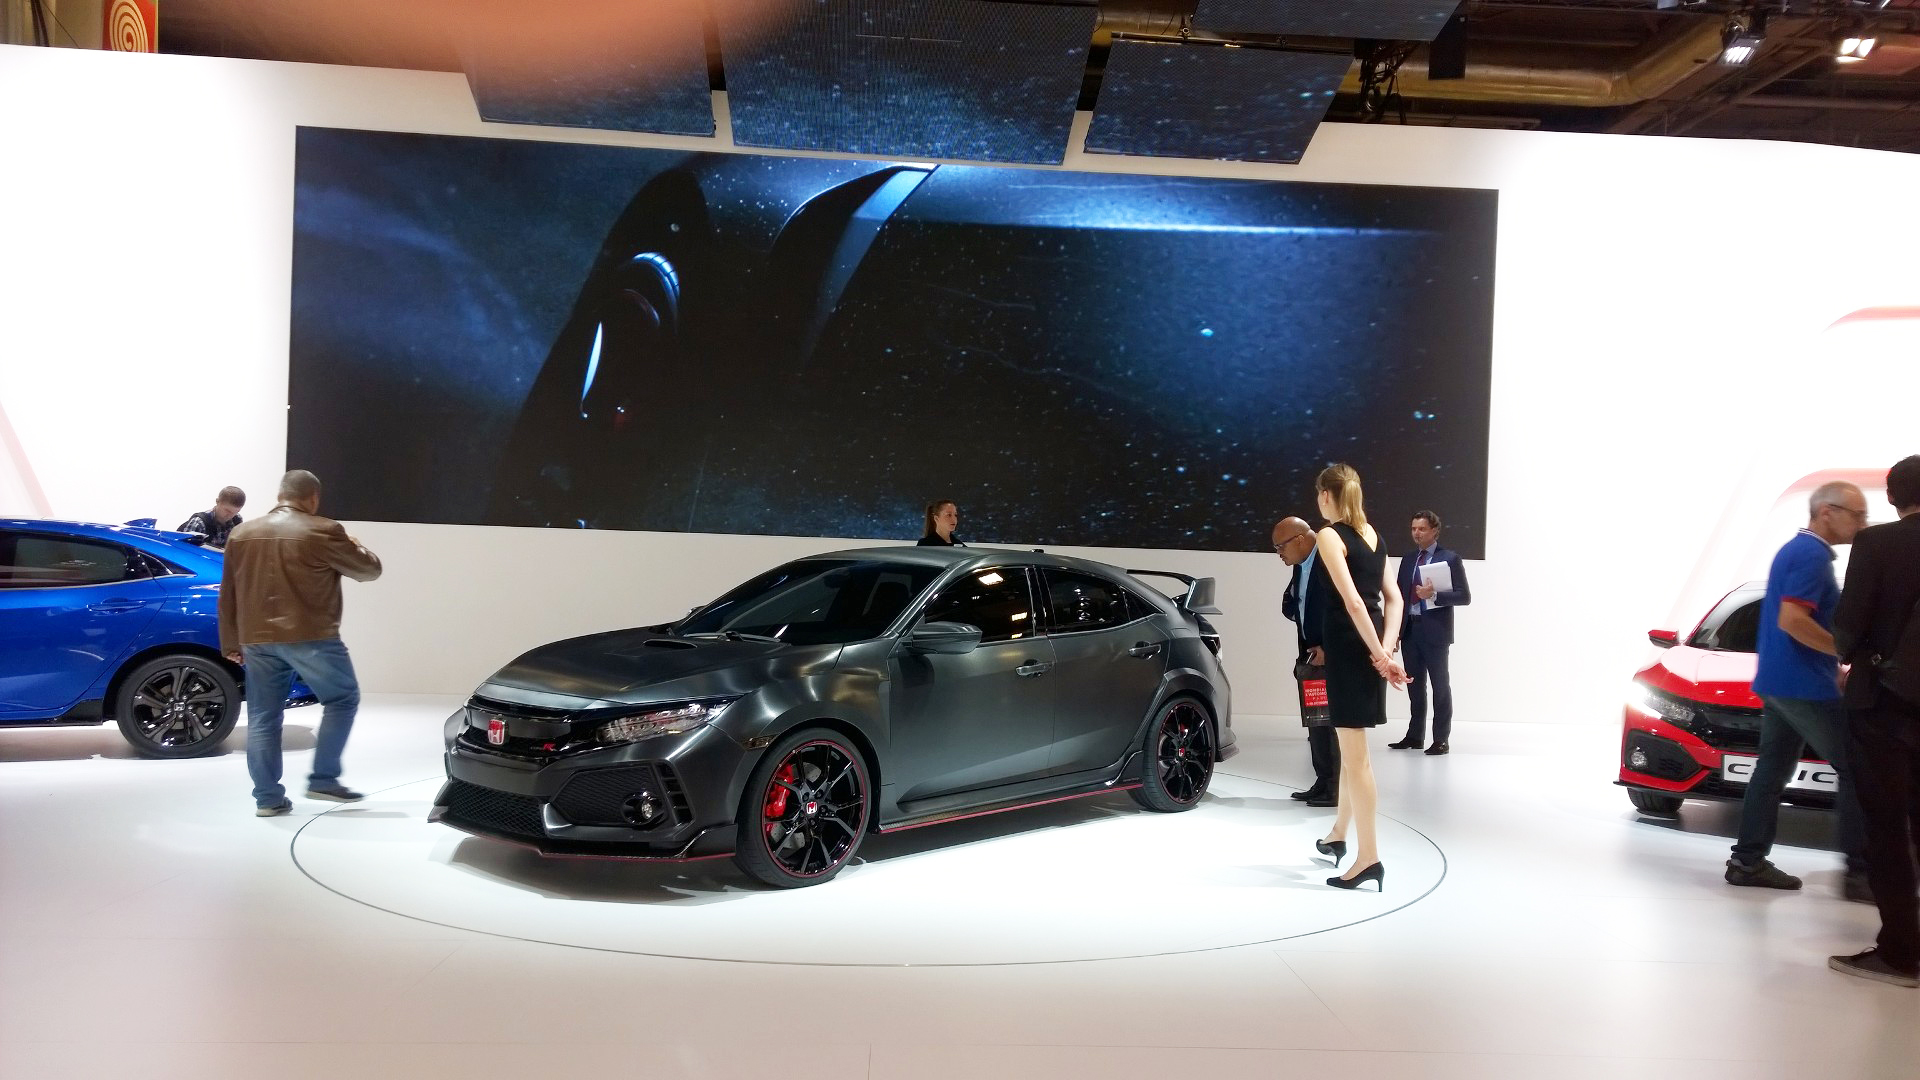 Honda Civic Type R - arrière / rear - 2016 - Mondial Auto - photo ELJ DM